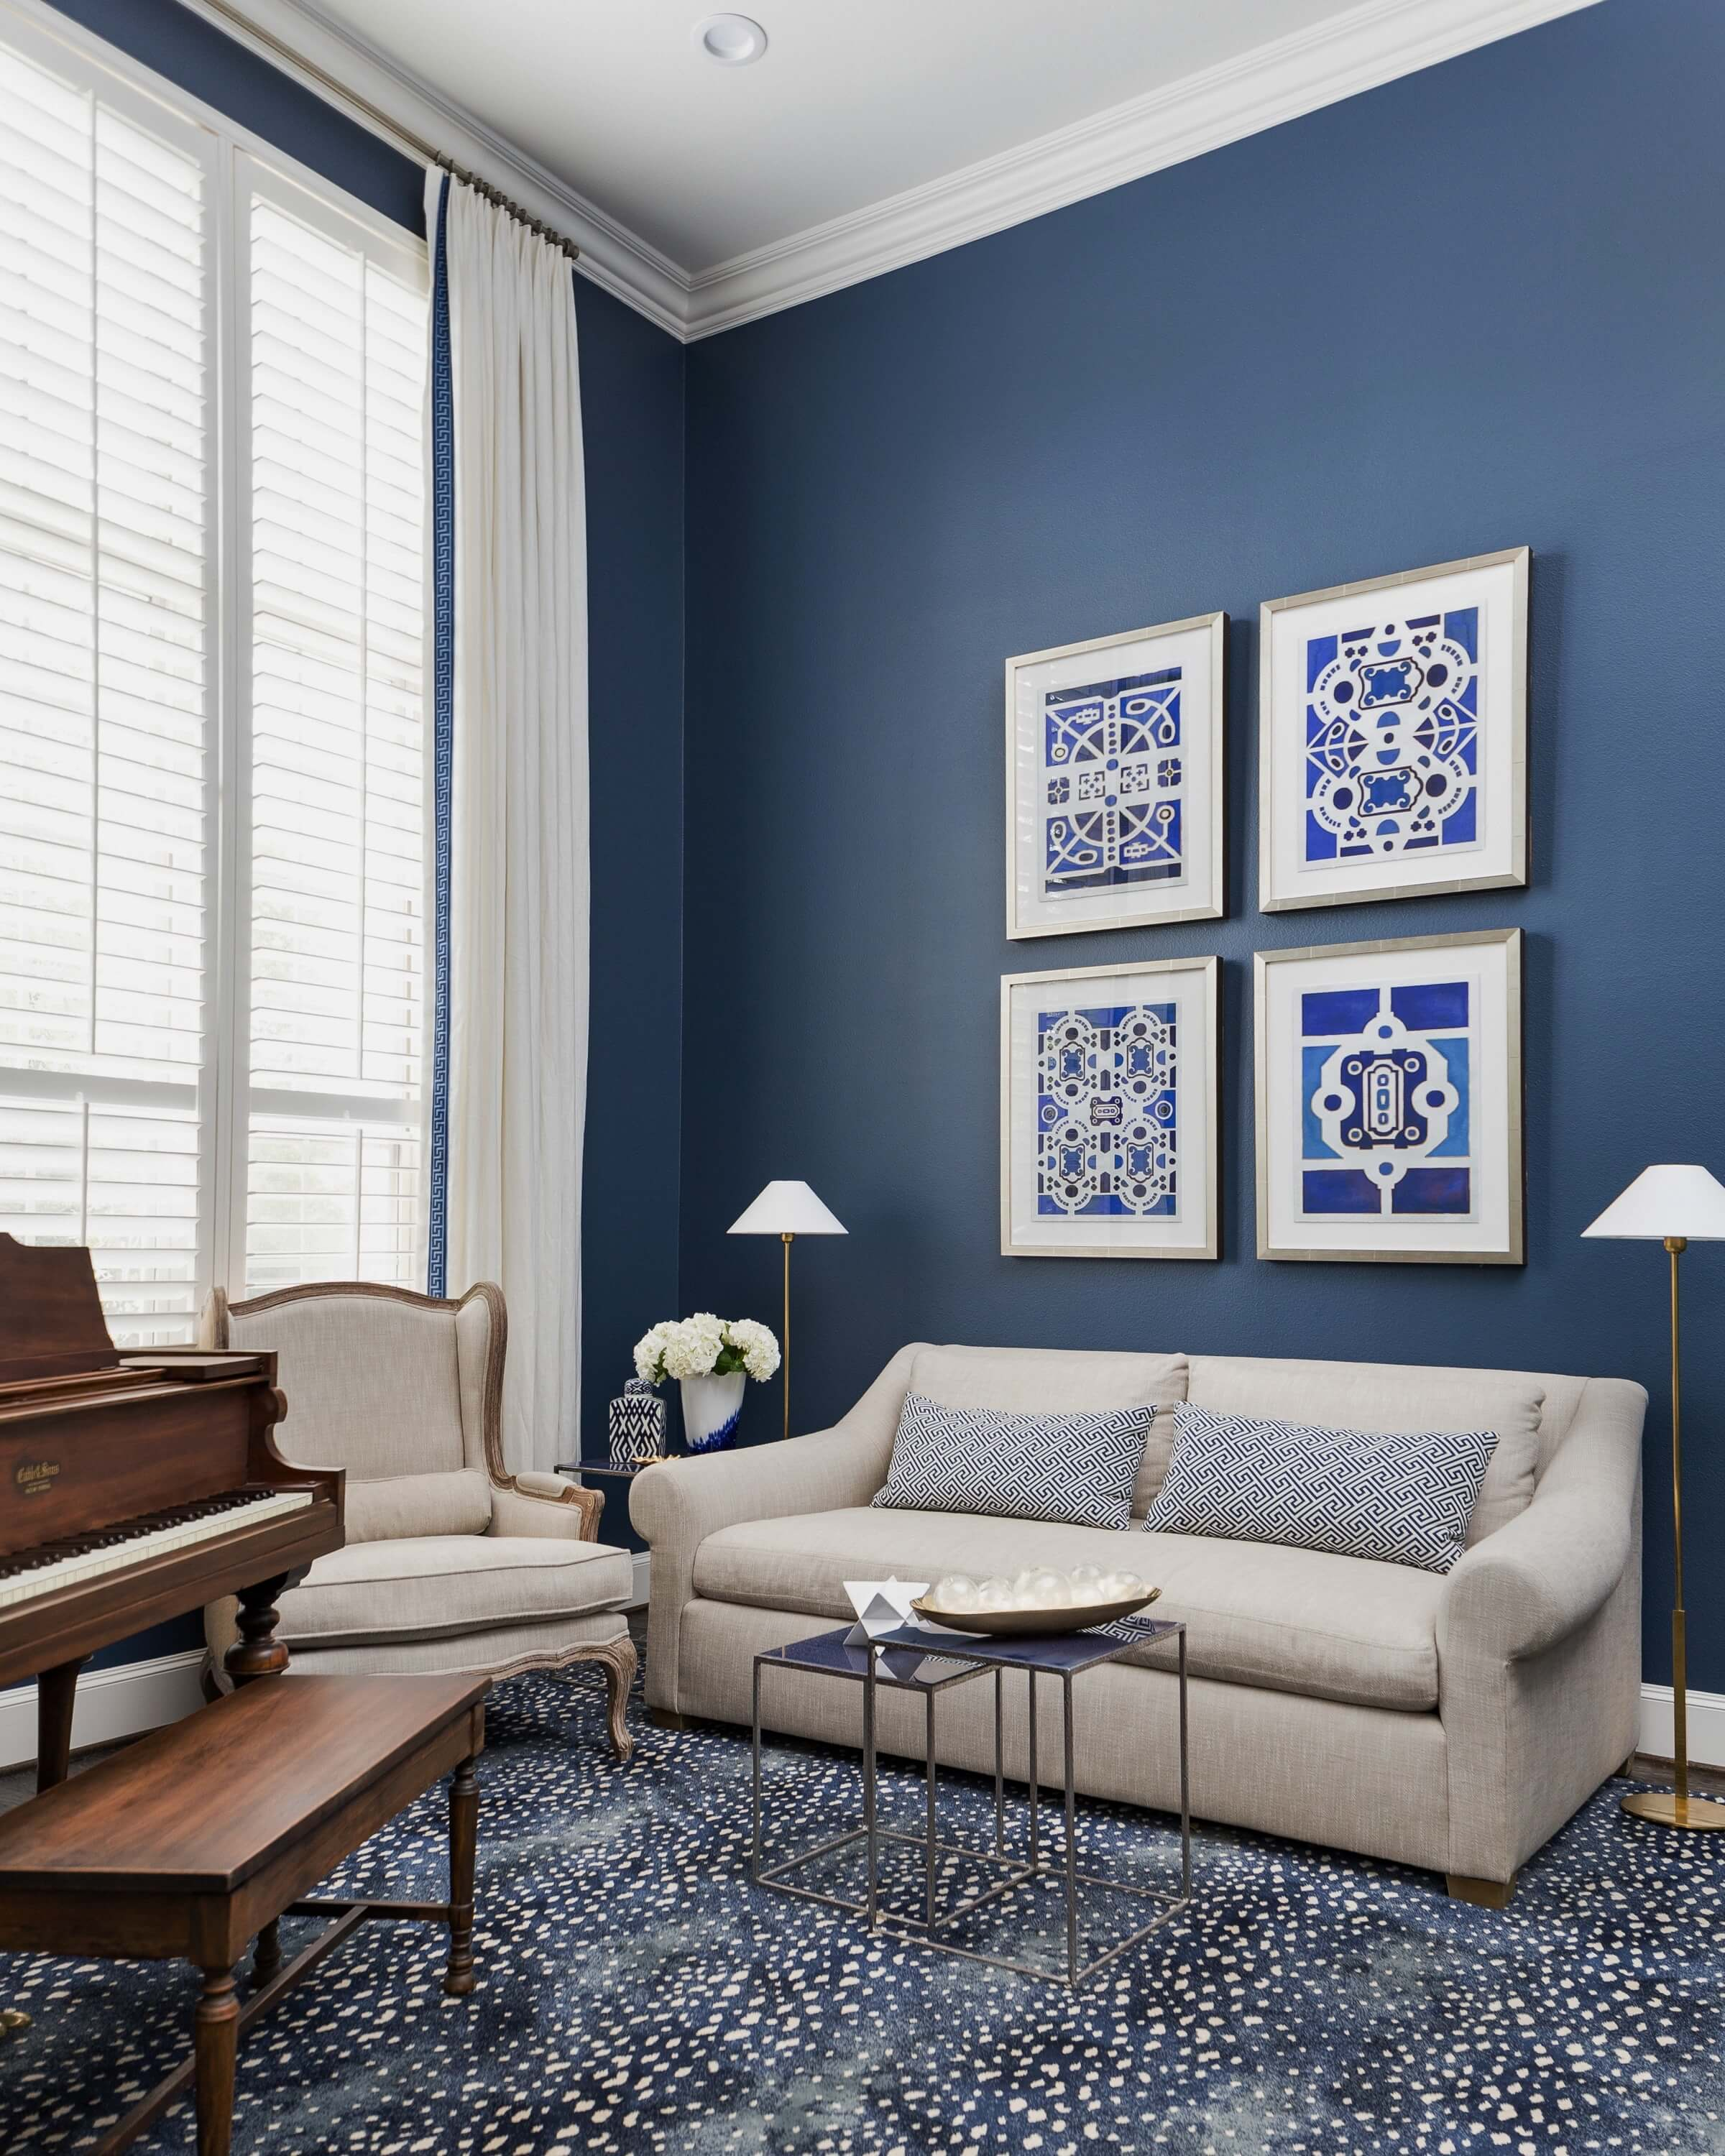 The antelope rug here makes a dynamic statement in this navy music room. #rugs #animalprintcarpet #rugideas #musicroom